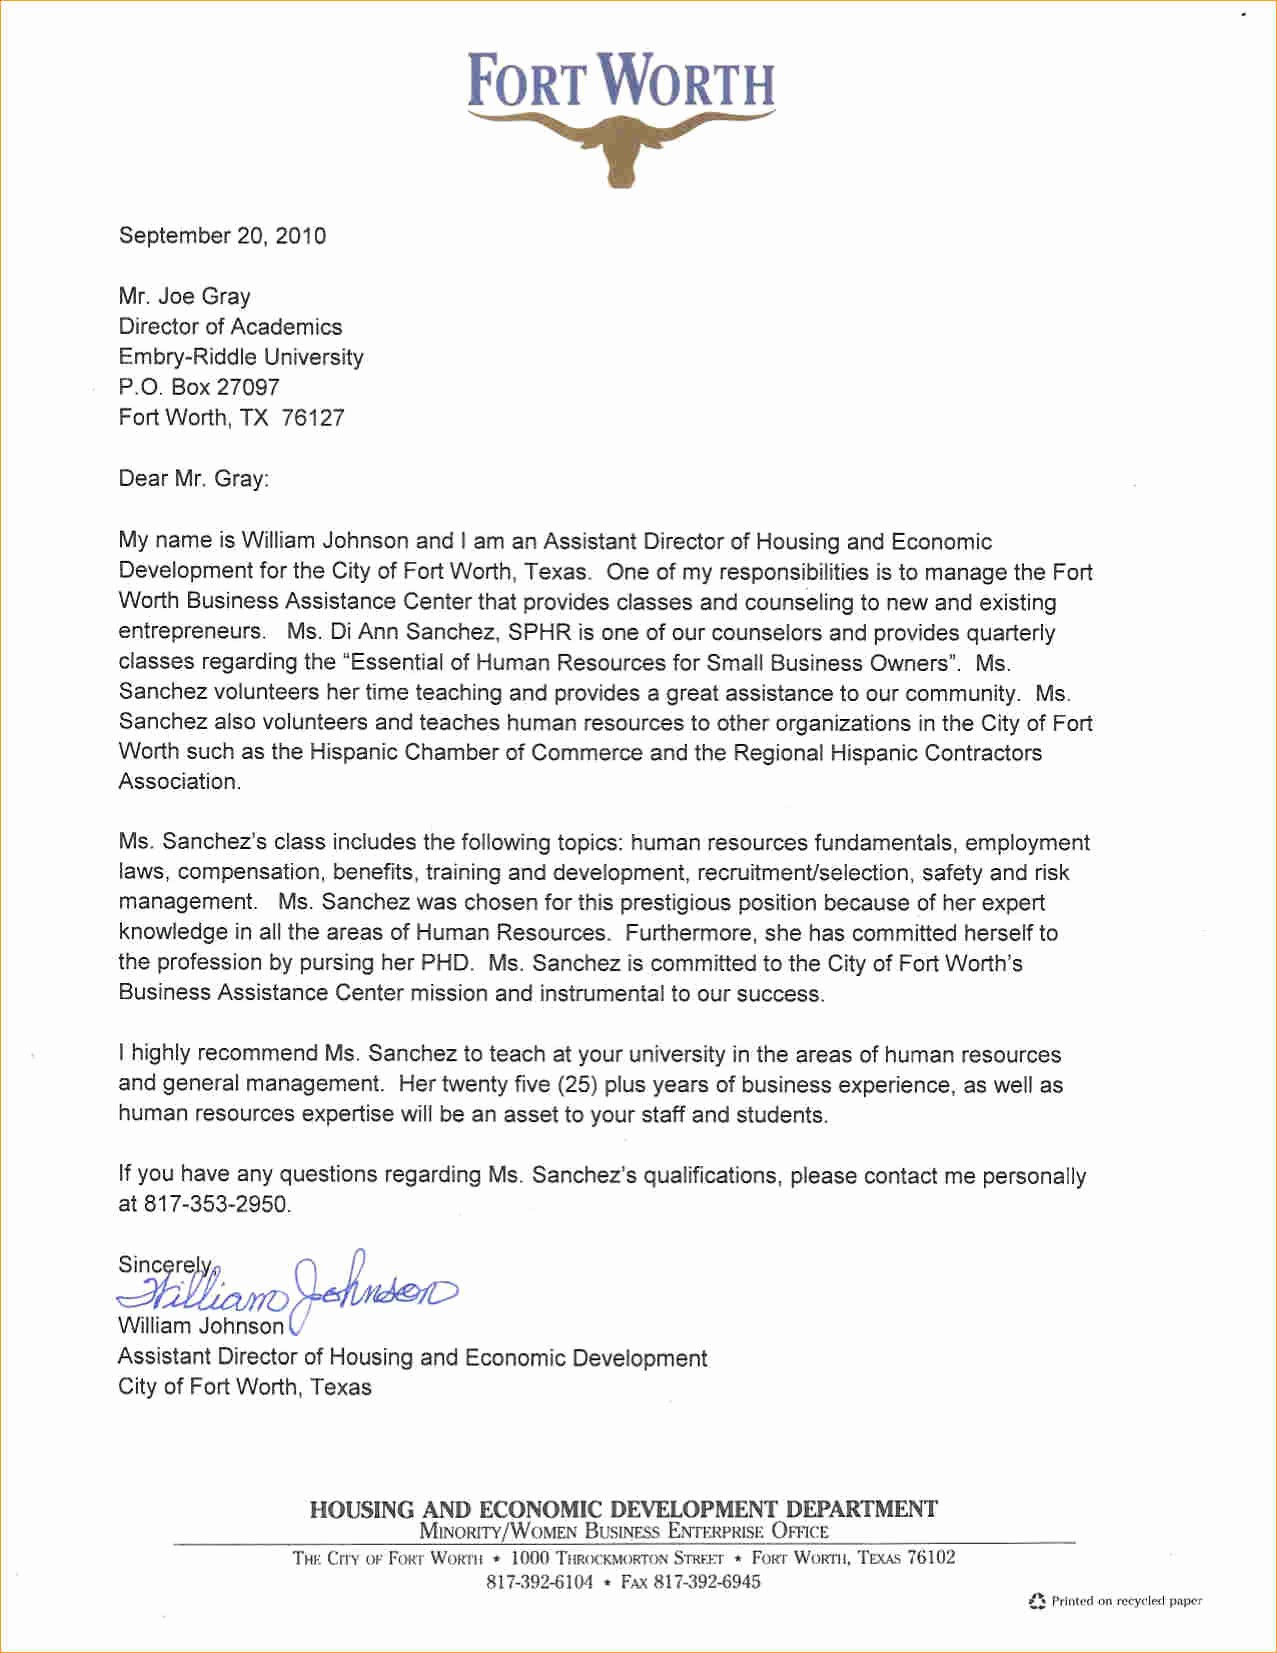 Sample Professional Letter Of Recommendation Awesome A Professional Letter Of Re Mendation Business